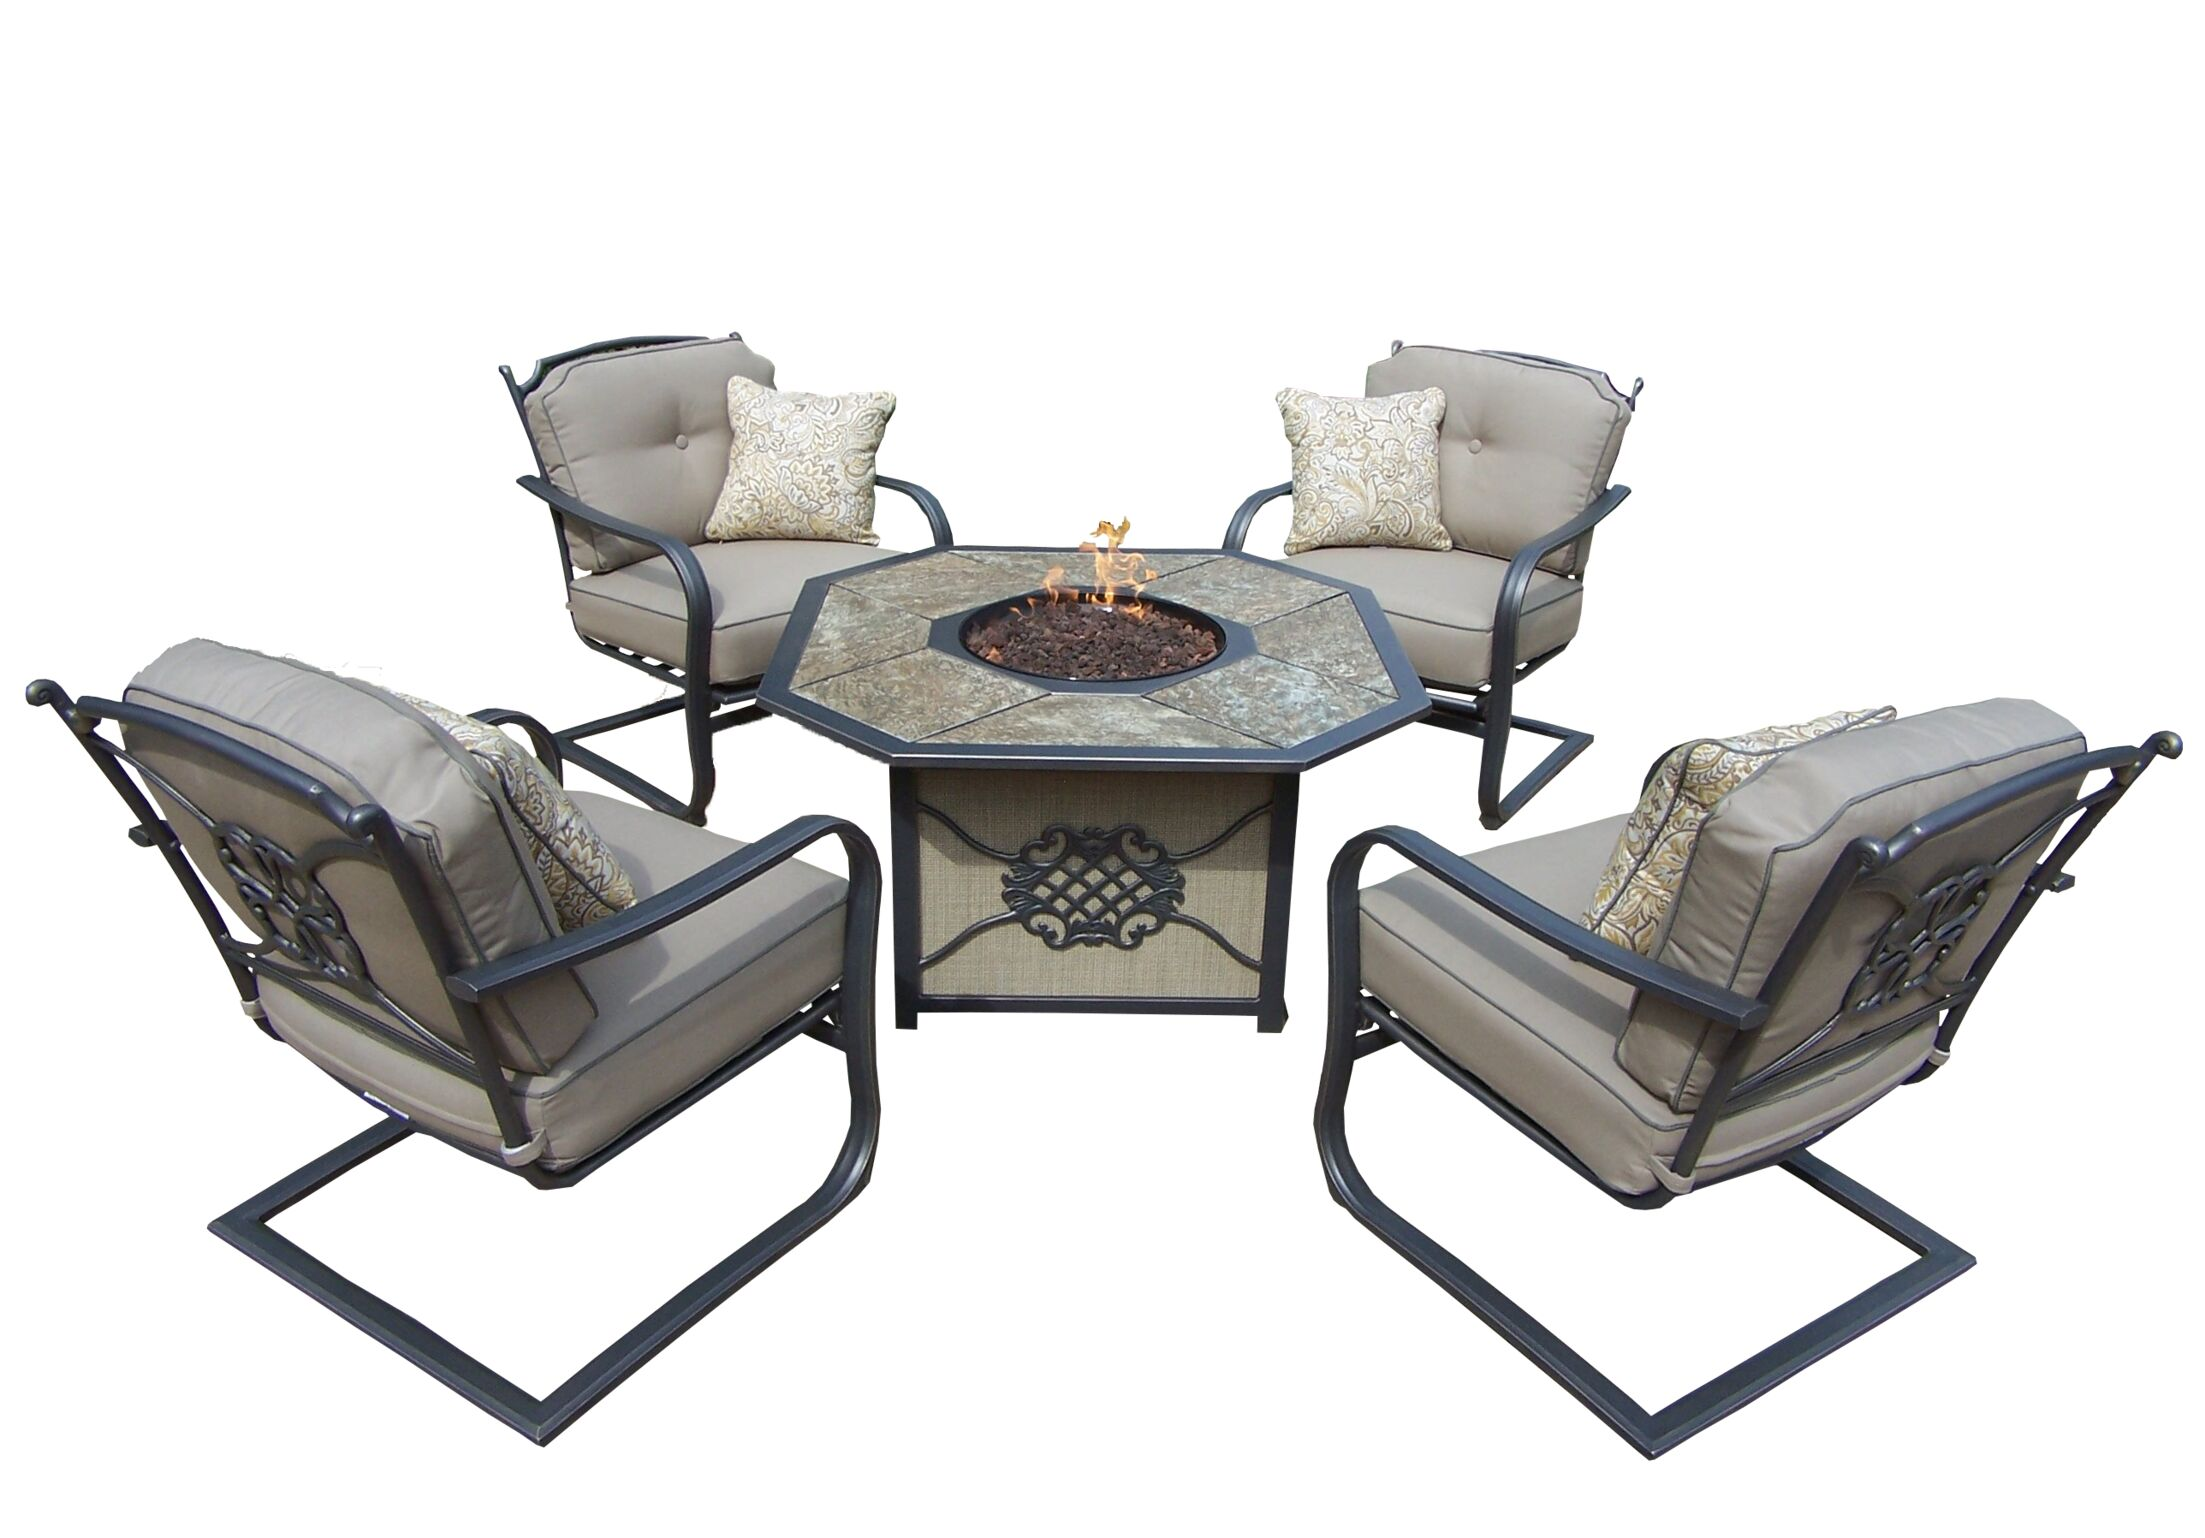 Tradition Fire Pit 5 Piece Sofa Set with Cushions